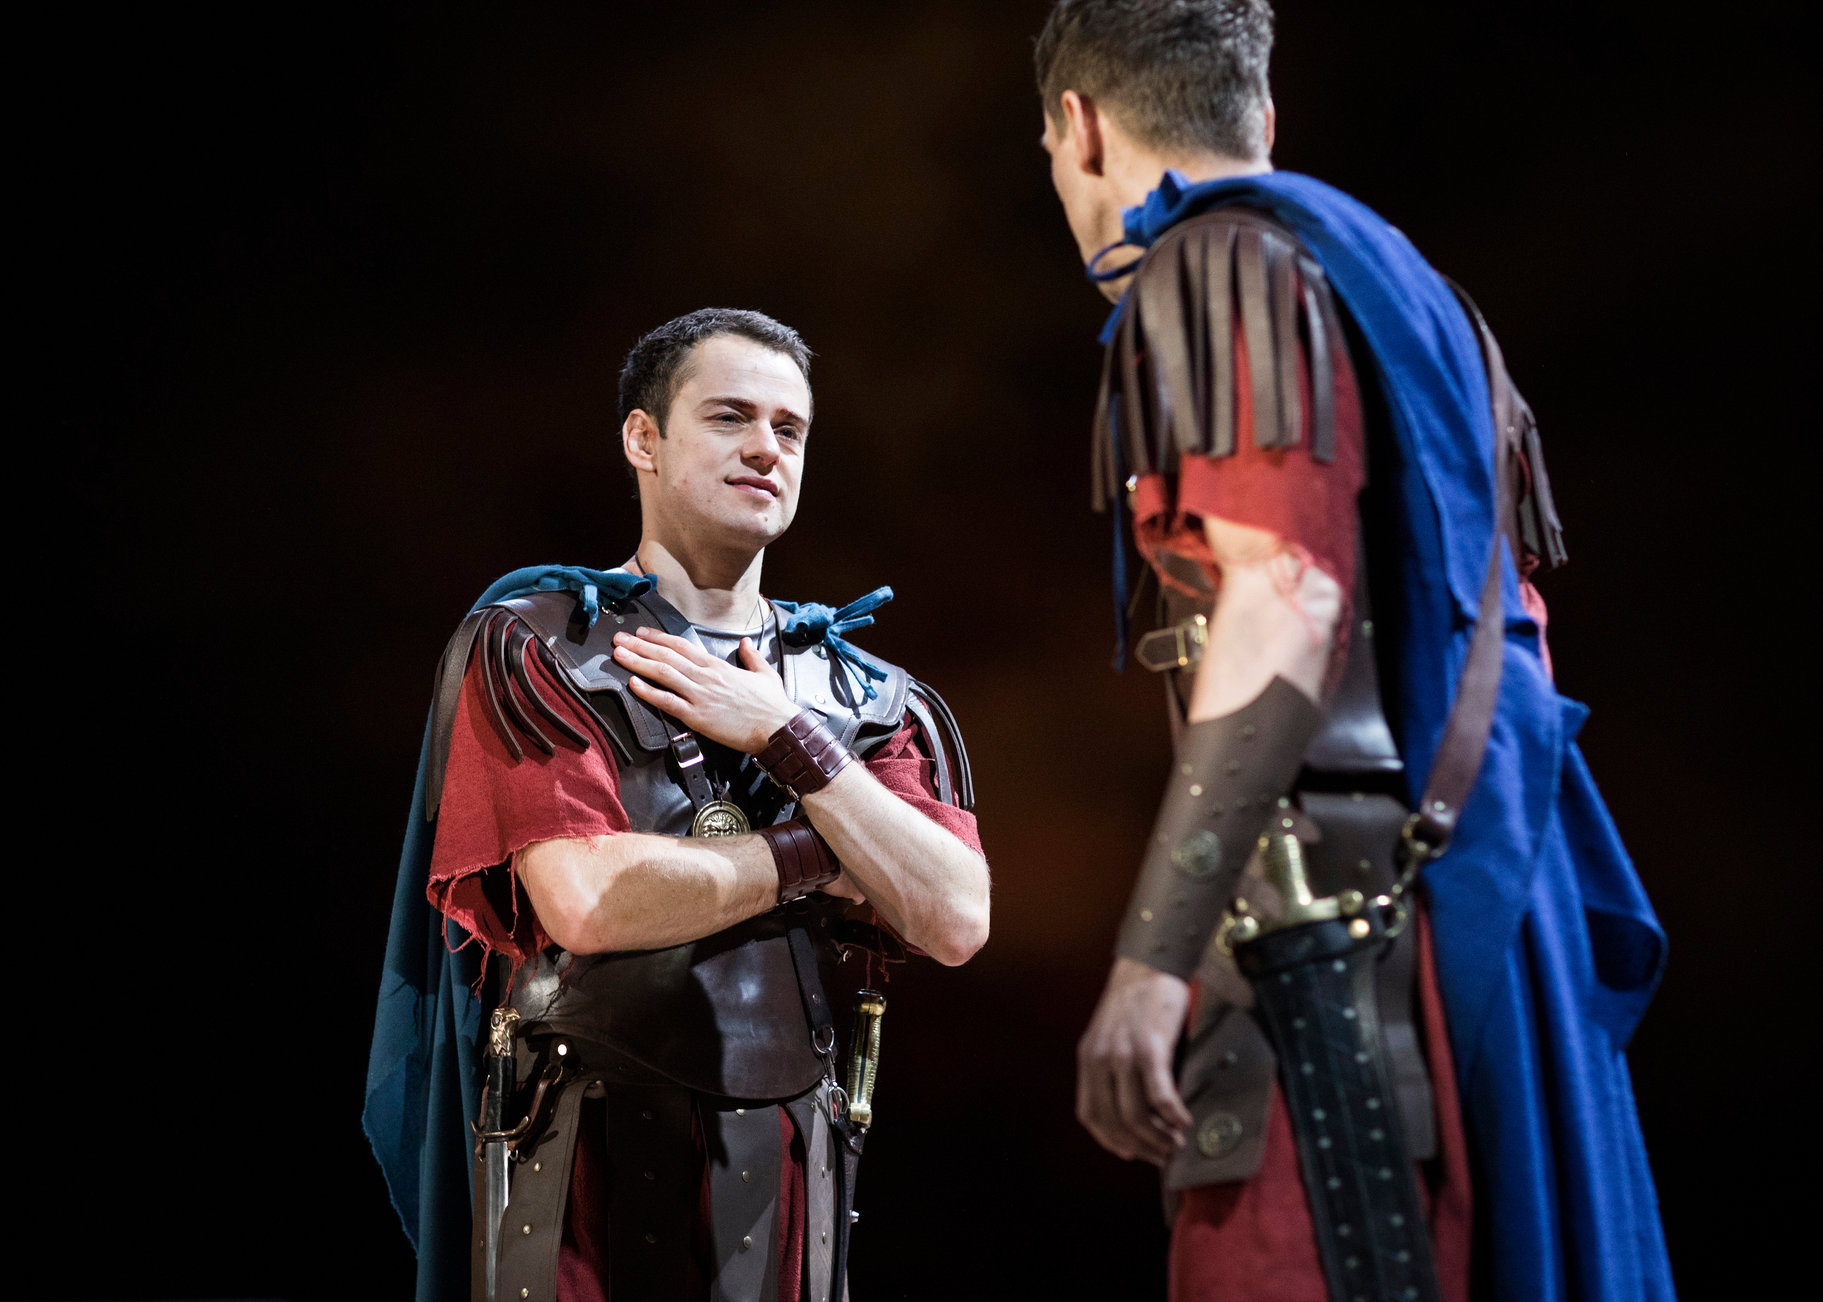 Cassius and Brutus prepare for war facing each other dressed in Roman uniform in the 2017 production of Julius Caesar.